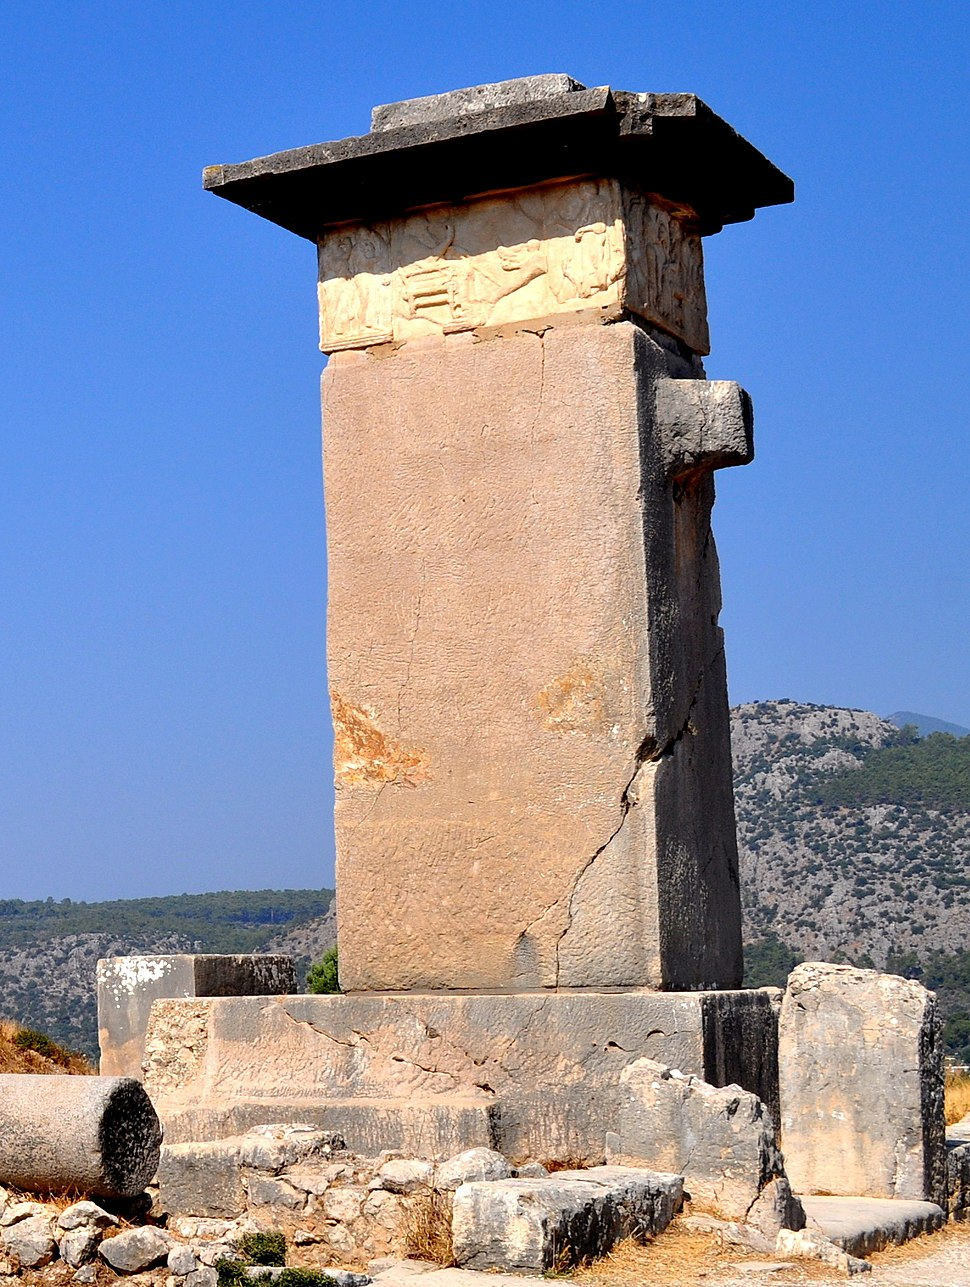 Xanthos sarcophagus (cropped)